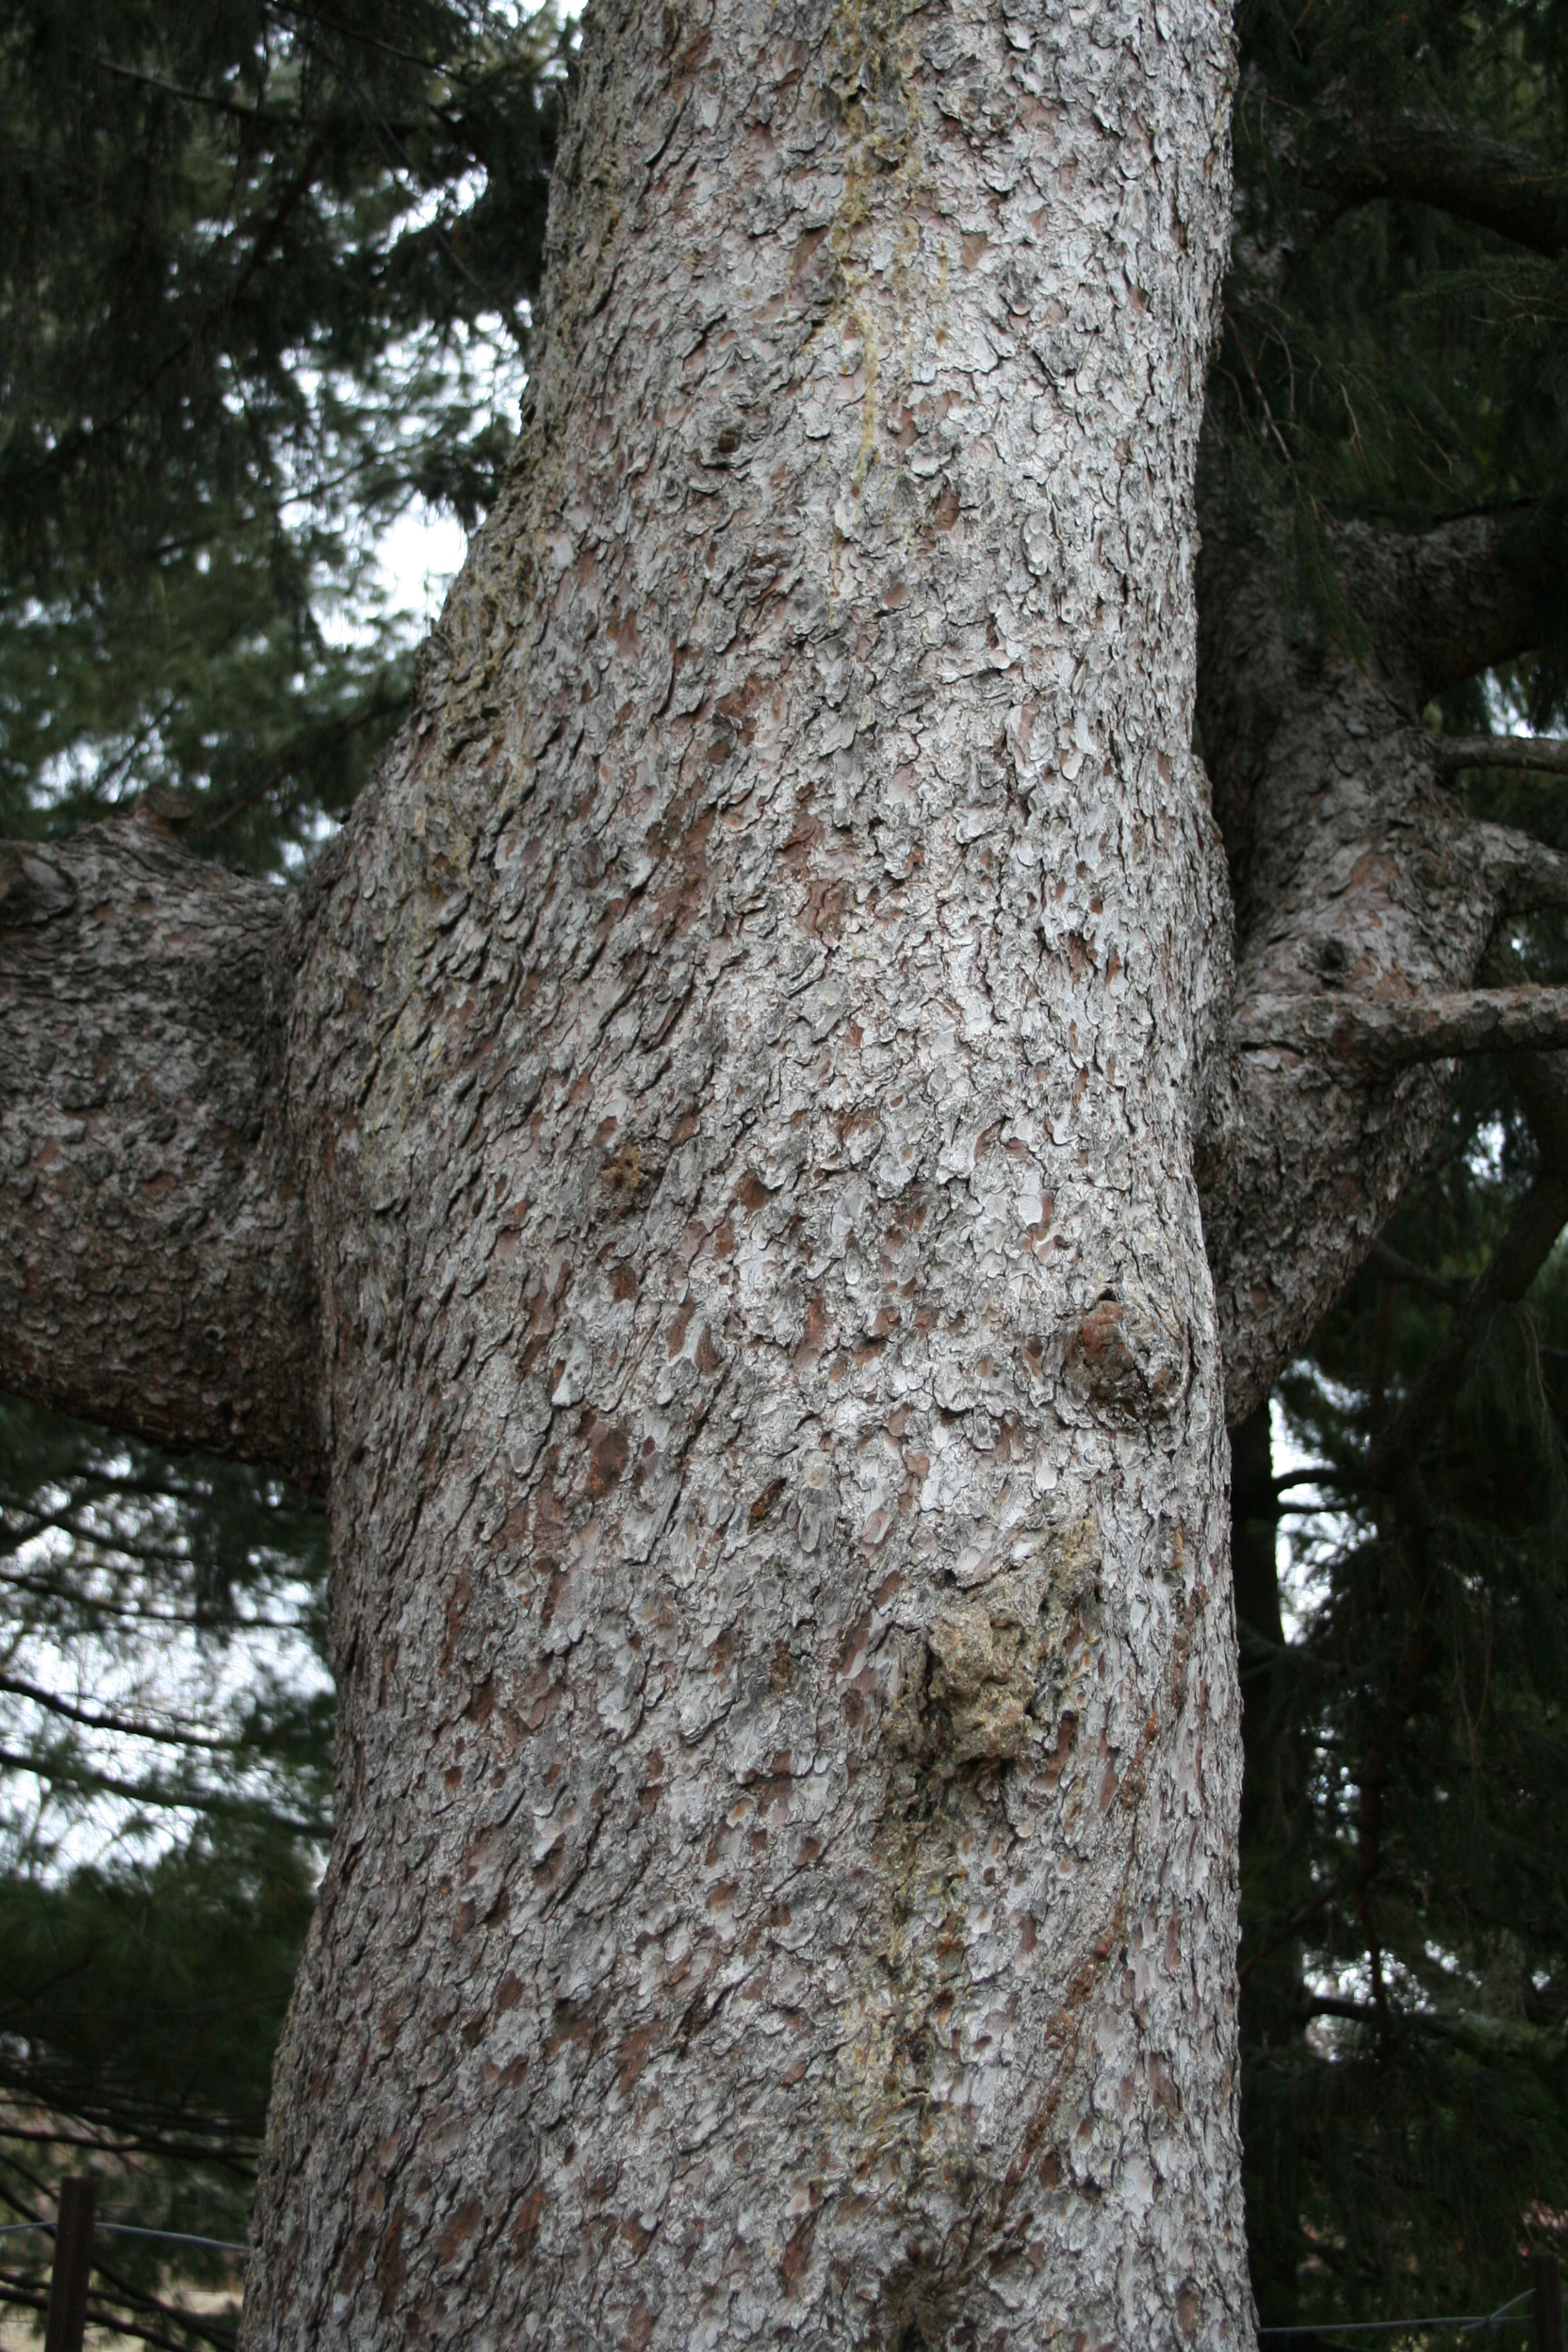 Close up of Concolor (white) Fir bark